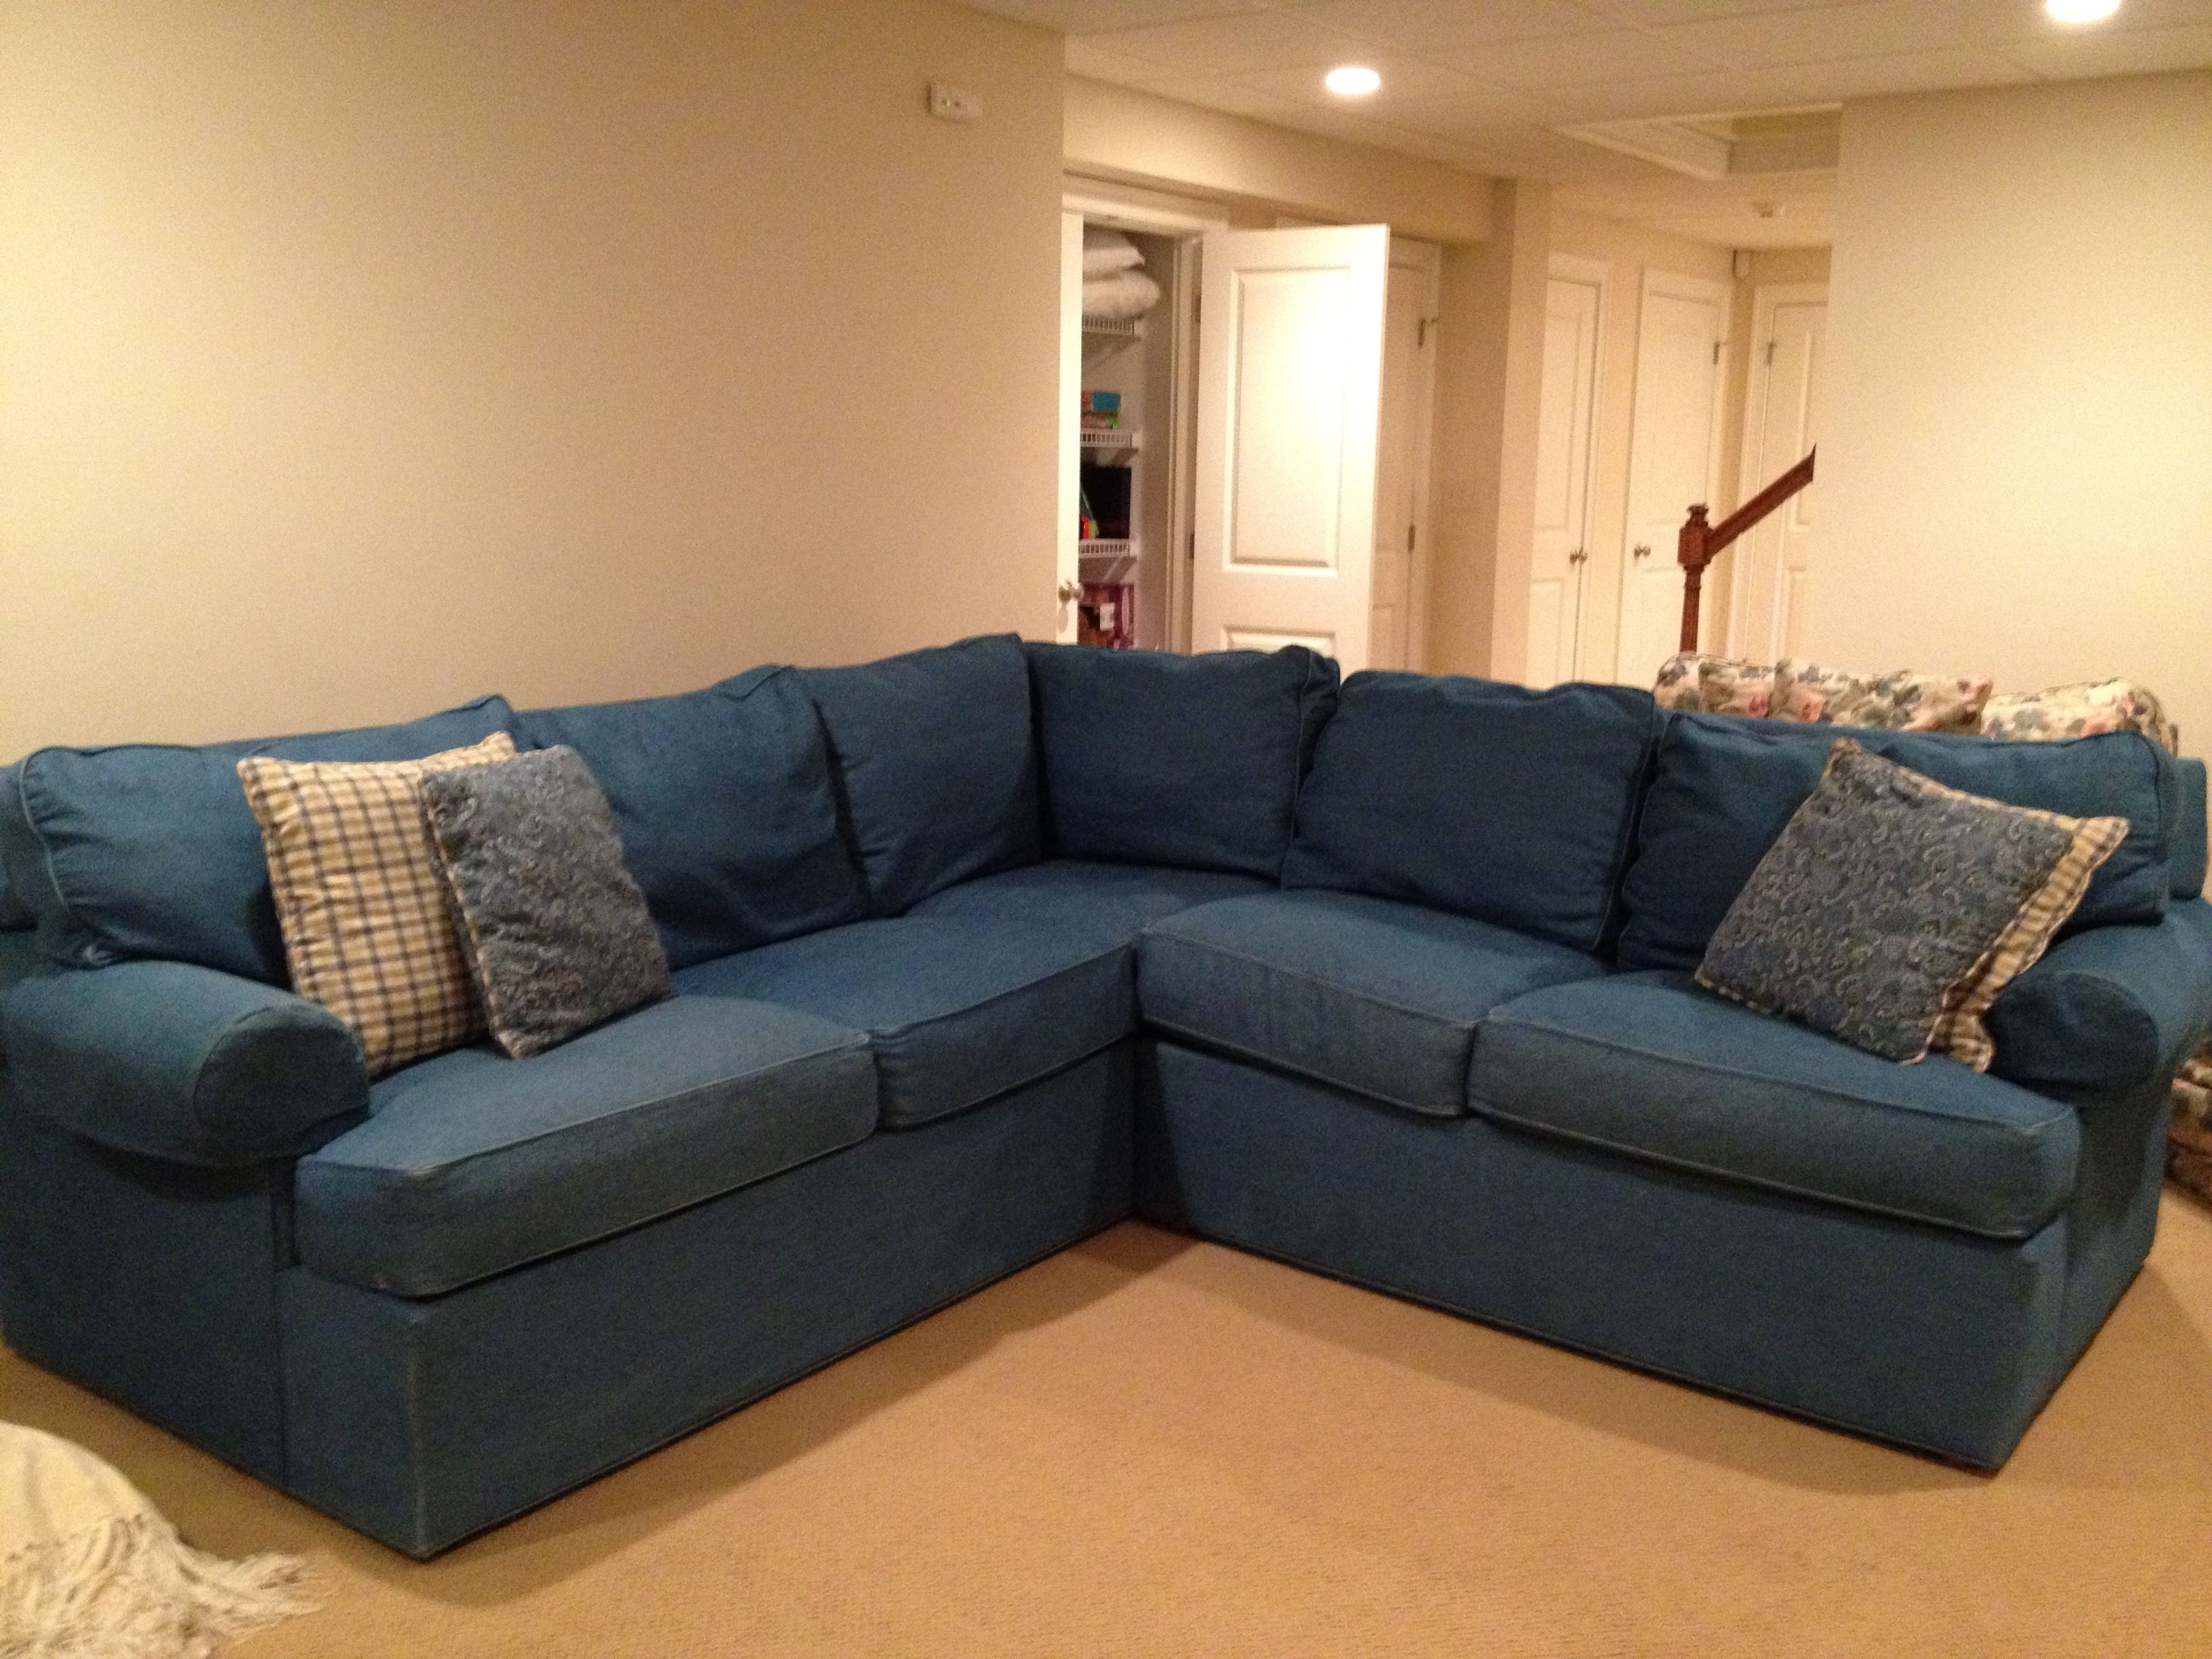 Exciting Denim Sectional Sofa Design For Living Room Decoration Modular Sofas Denim Sectional